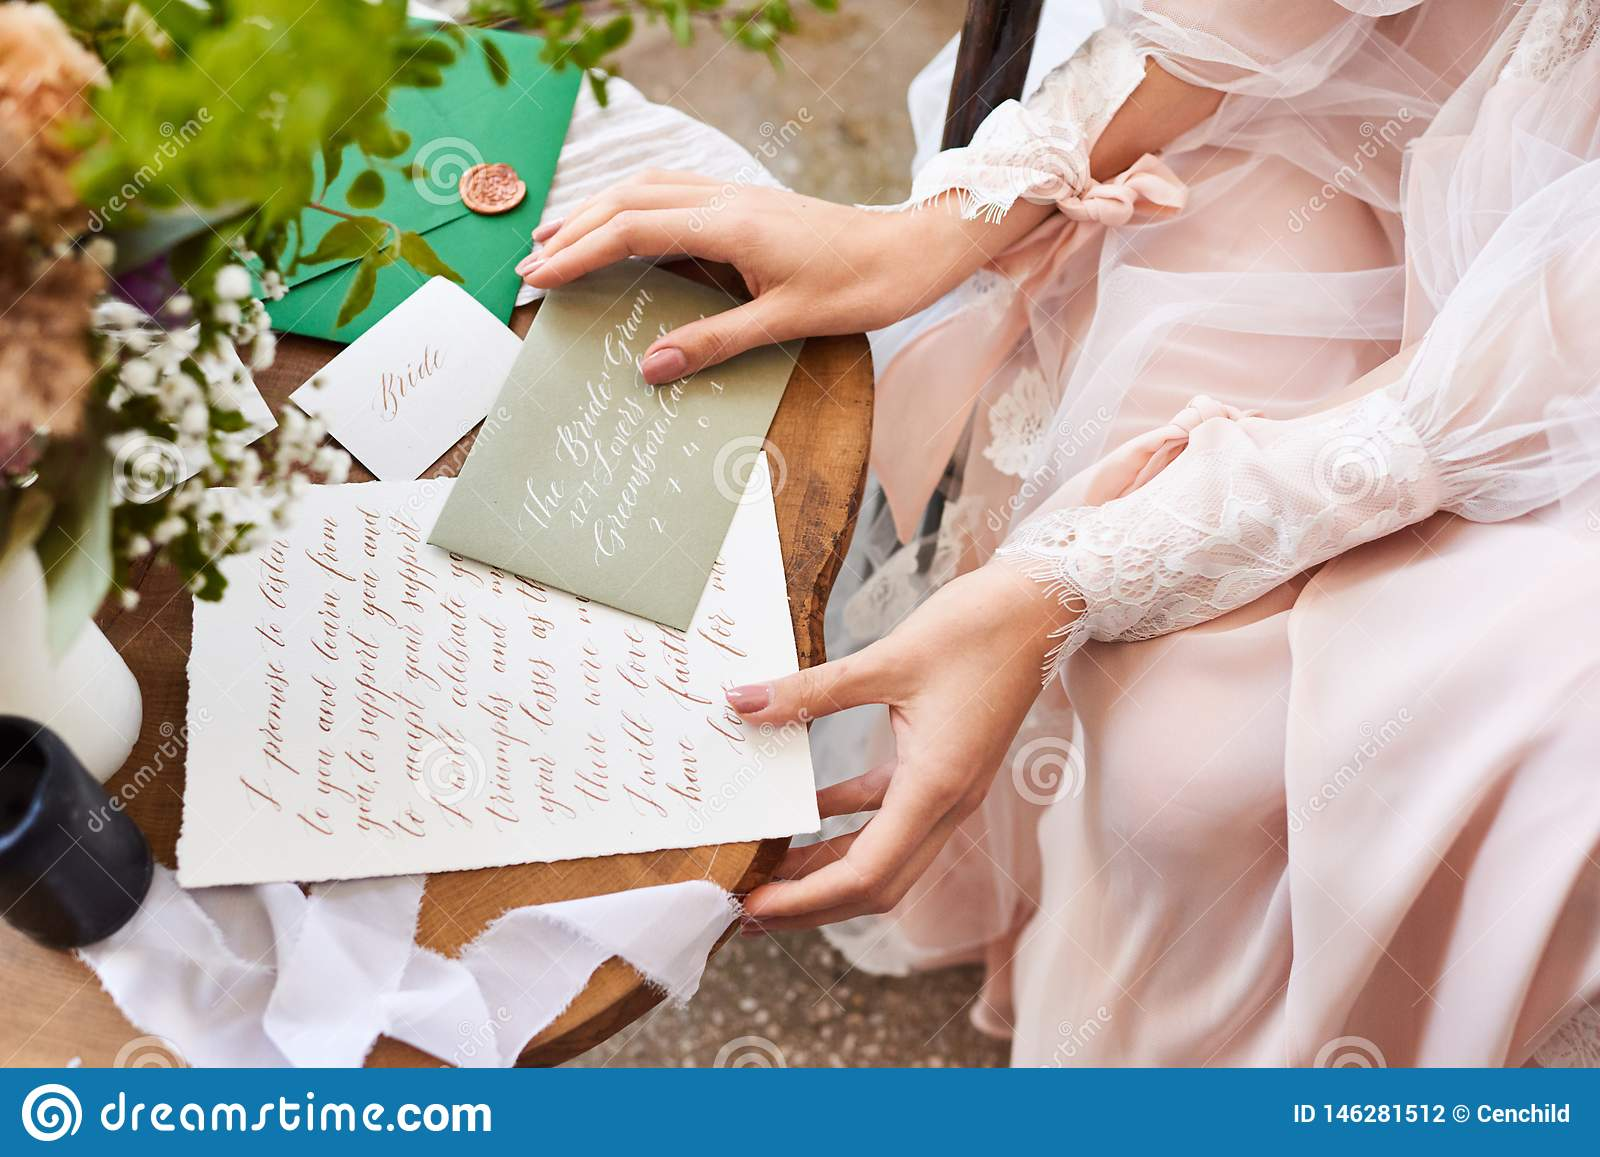 Wedding Day Letter To Bride.Wedding Day The Bride Sits Near The Window And Reads The